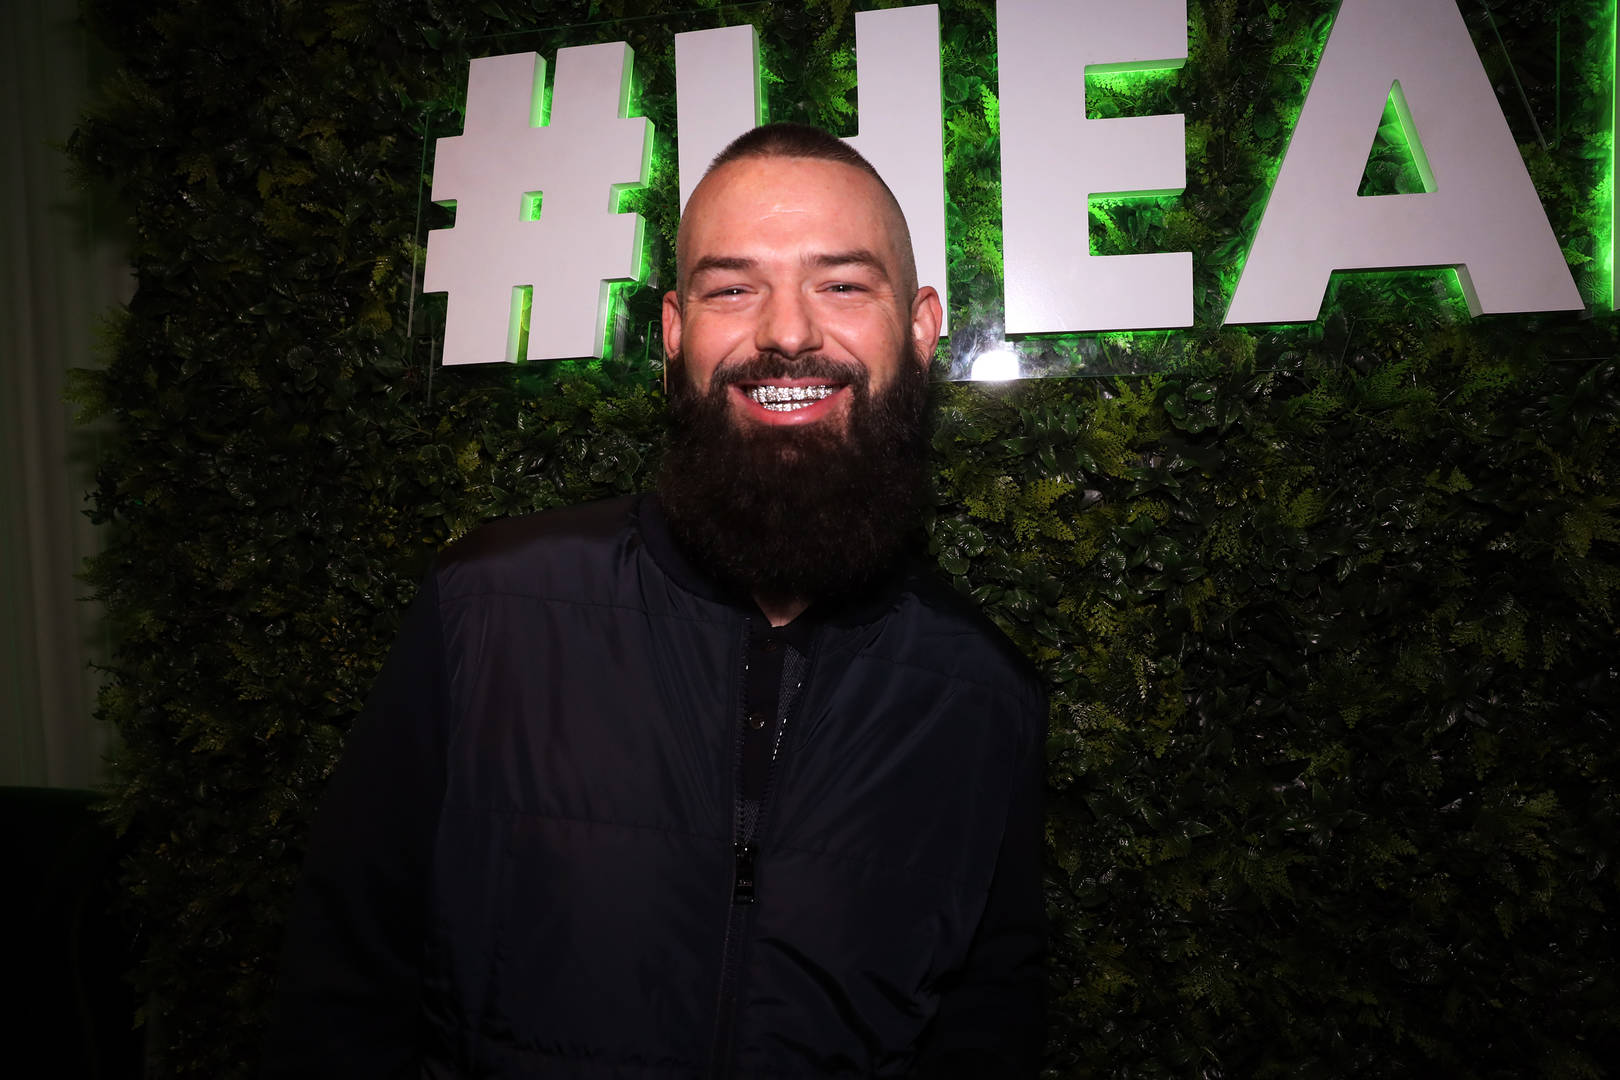 Paul Wall attends the Bryan Michael Cox 16th Annual Music And Memory Pre-Grammy Brunch 2020 at SLS Hotel on January 26, 2020 in Beverly Hills, California.